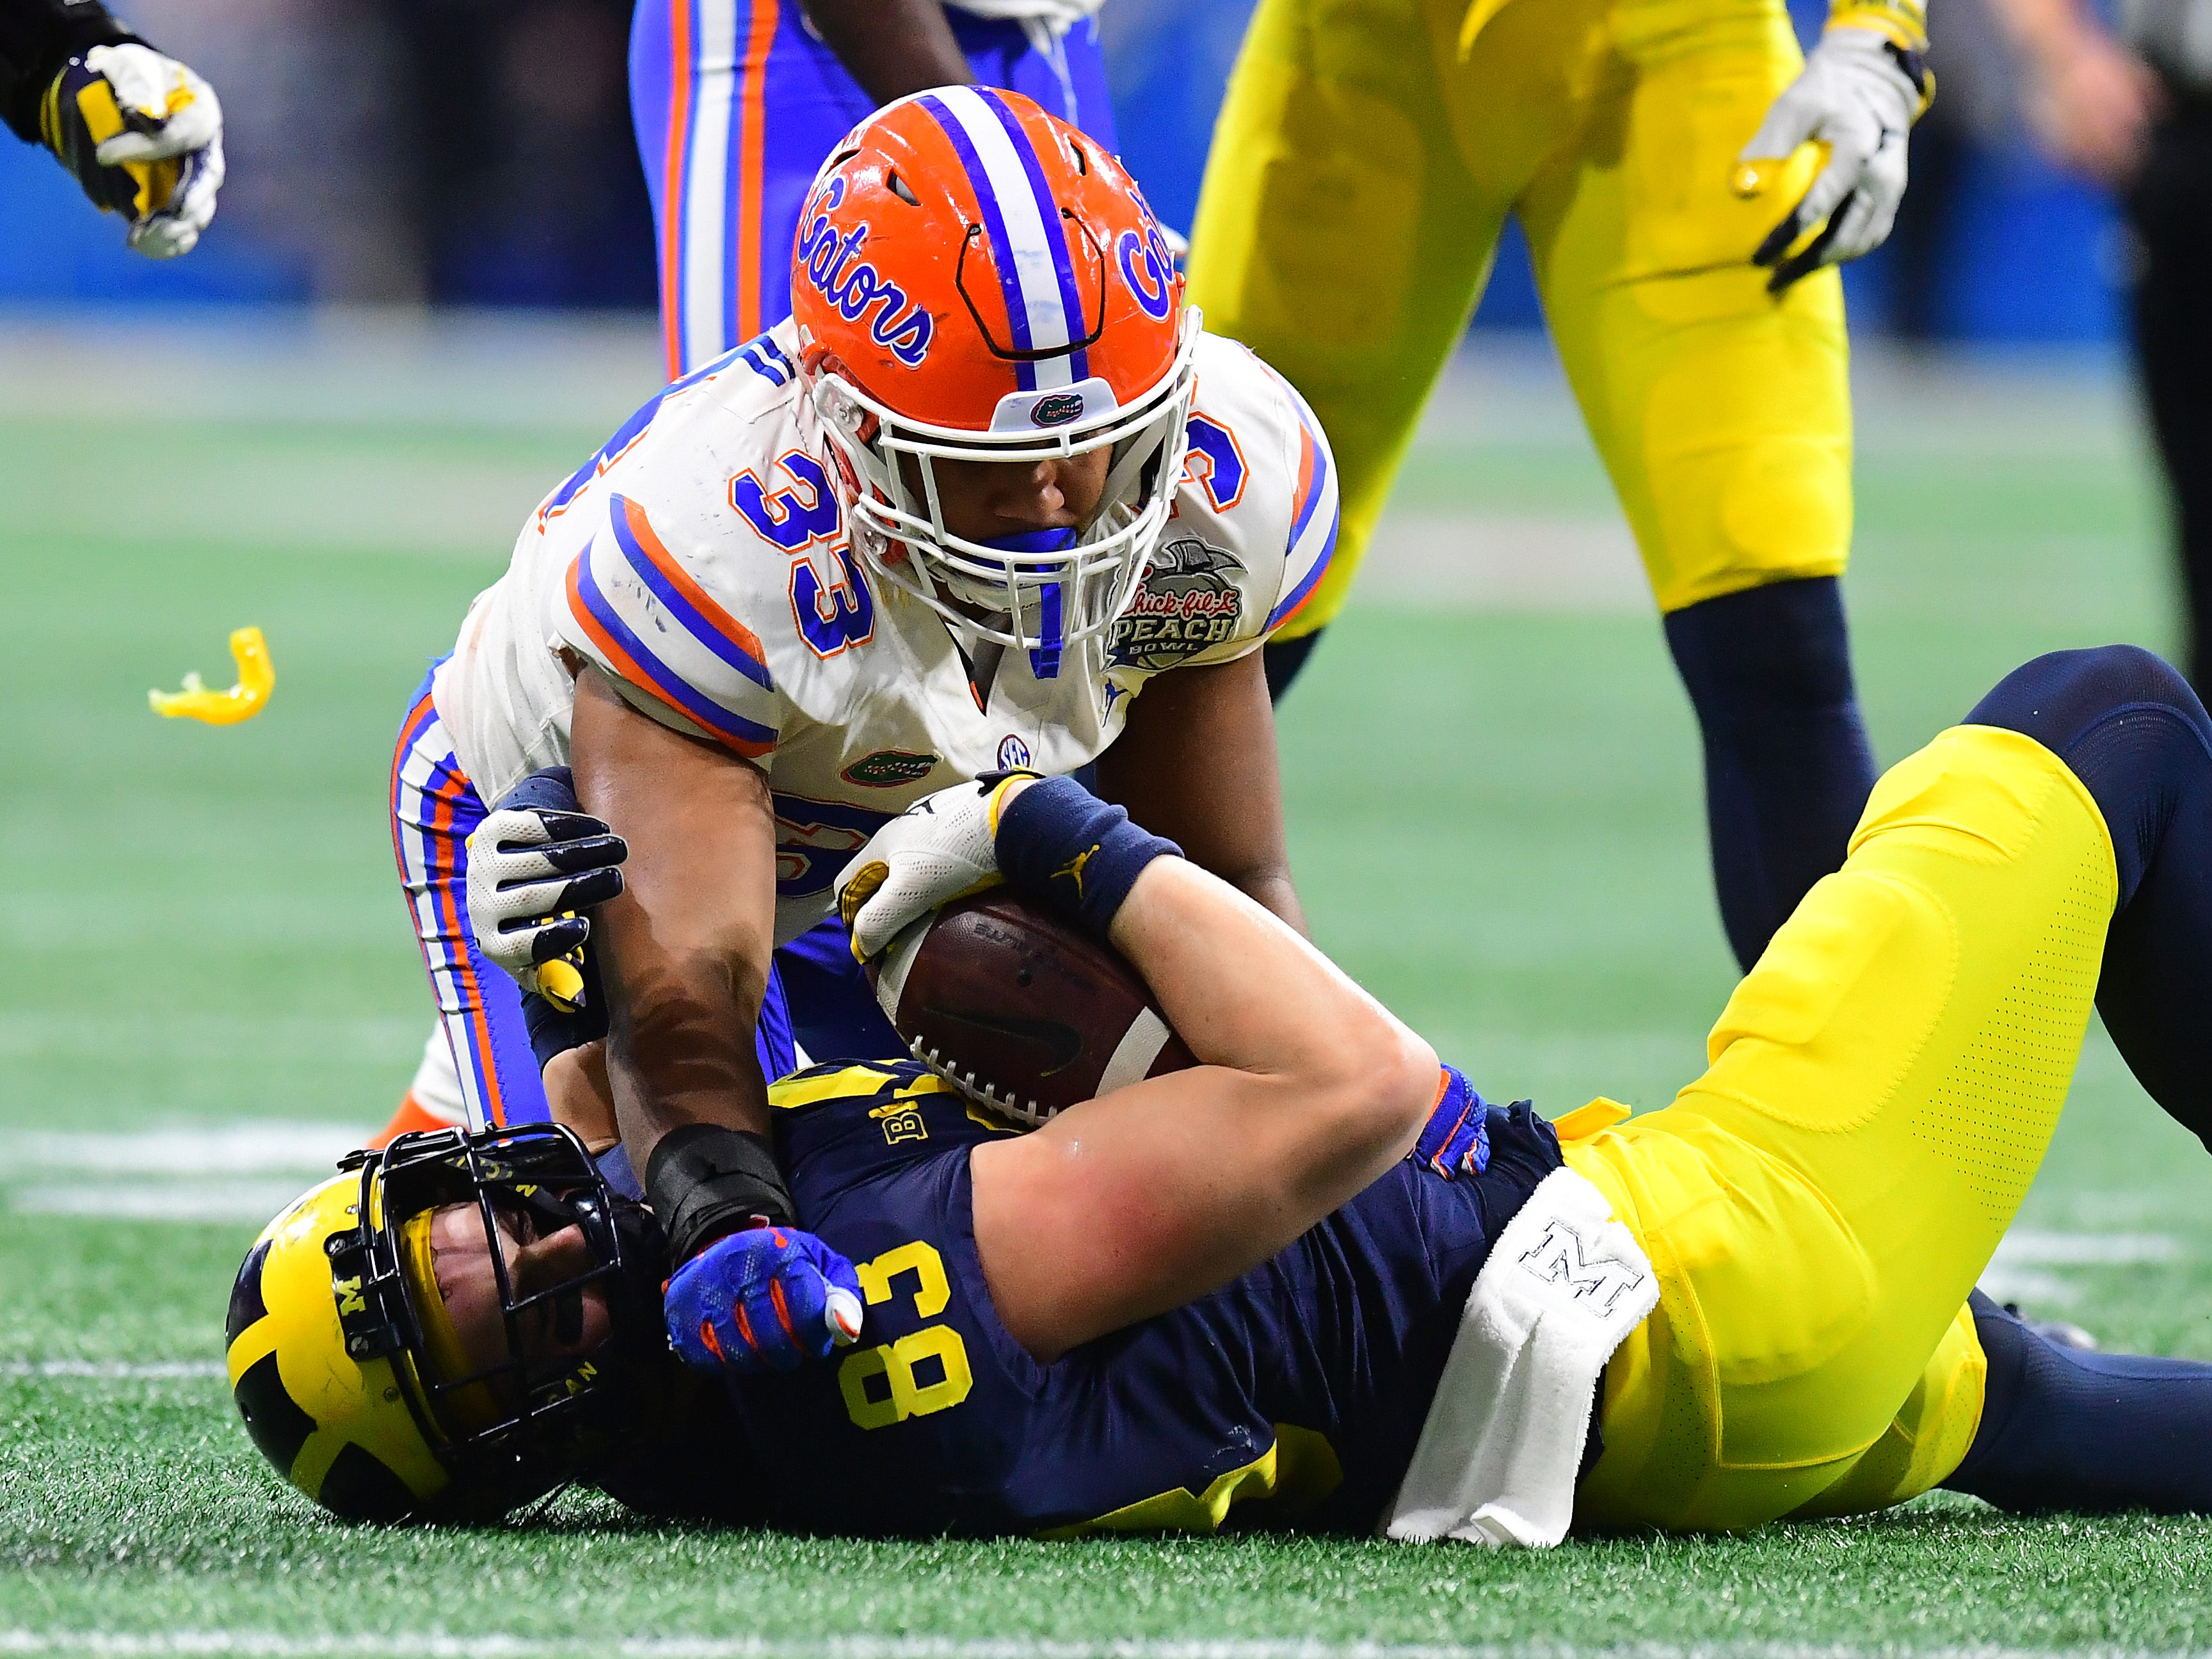 Michigan tight end Zach Gentry is tackled by Florida's David Reese II in the third quarter during U-M's 41-15 loss in the Peach Bowl on Saturday, Dec. 29, 2018, in Atlanta.